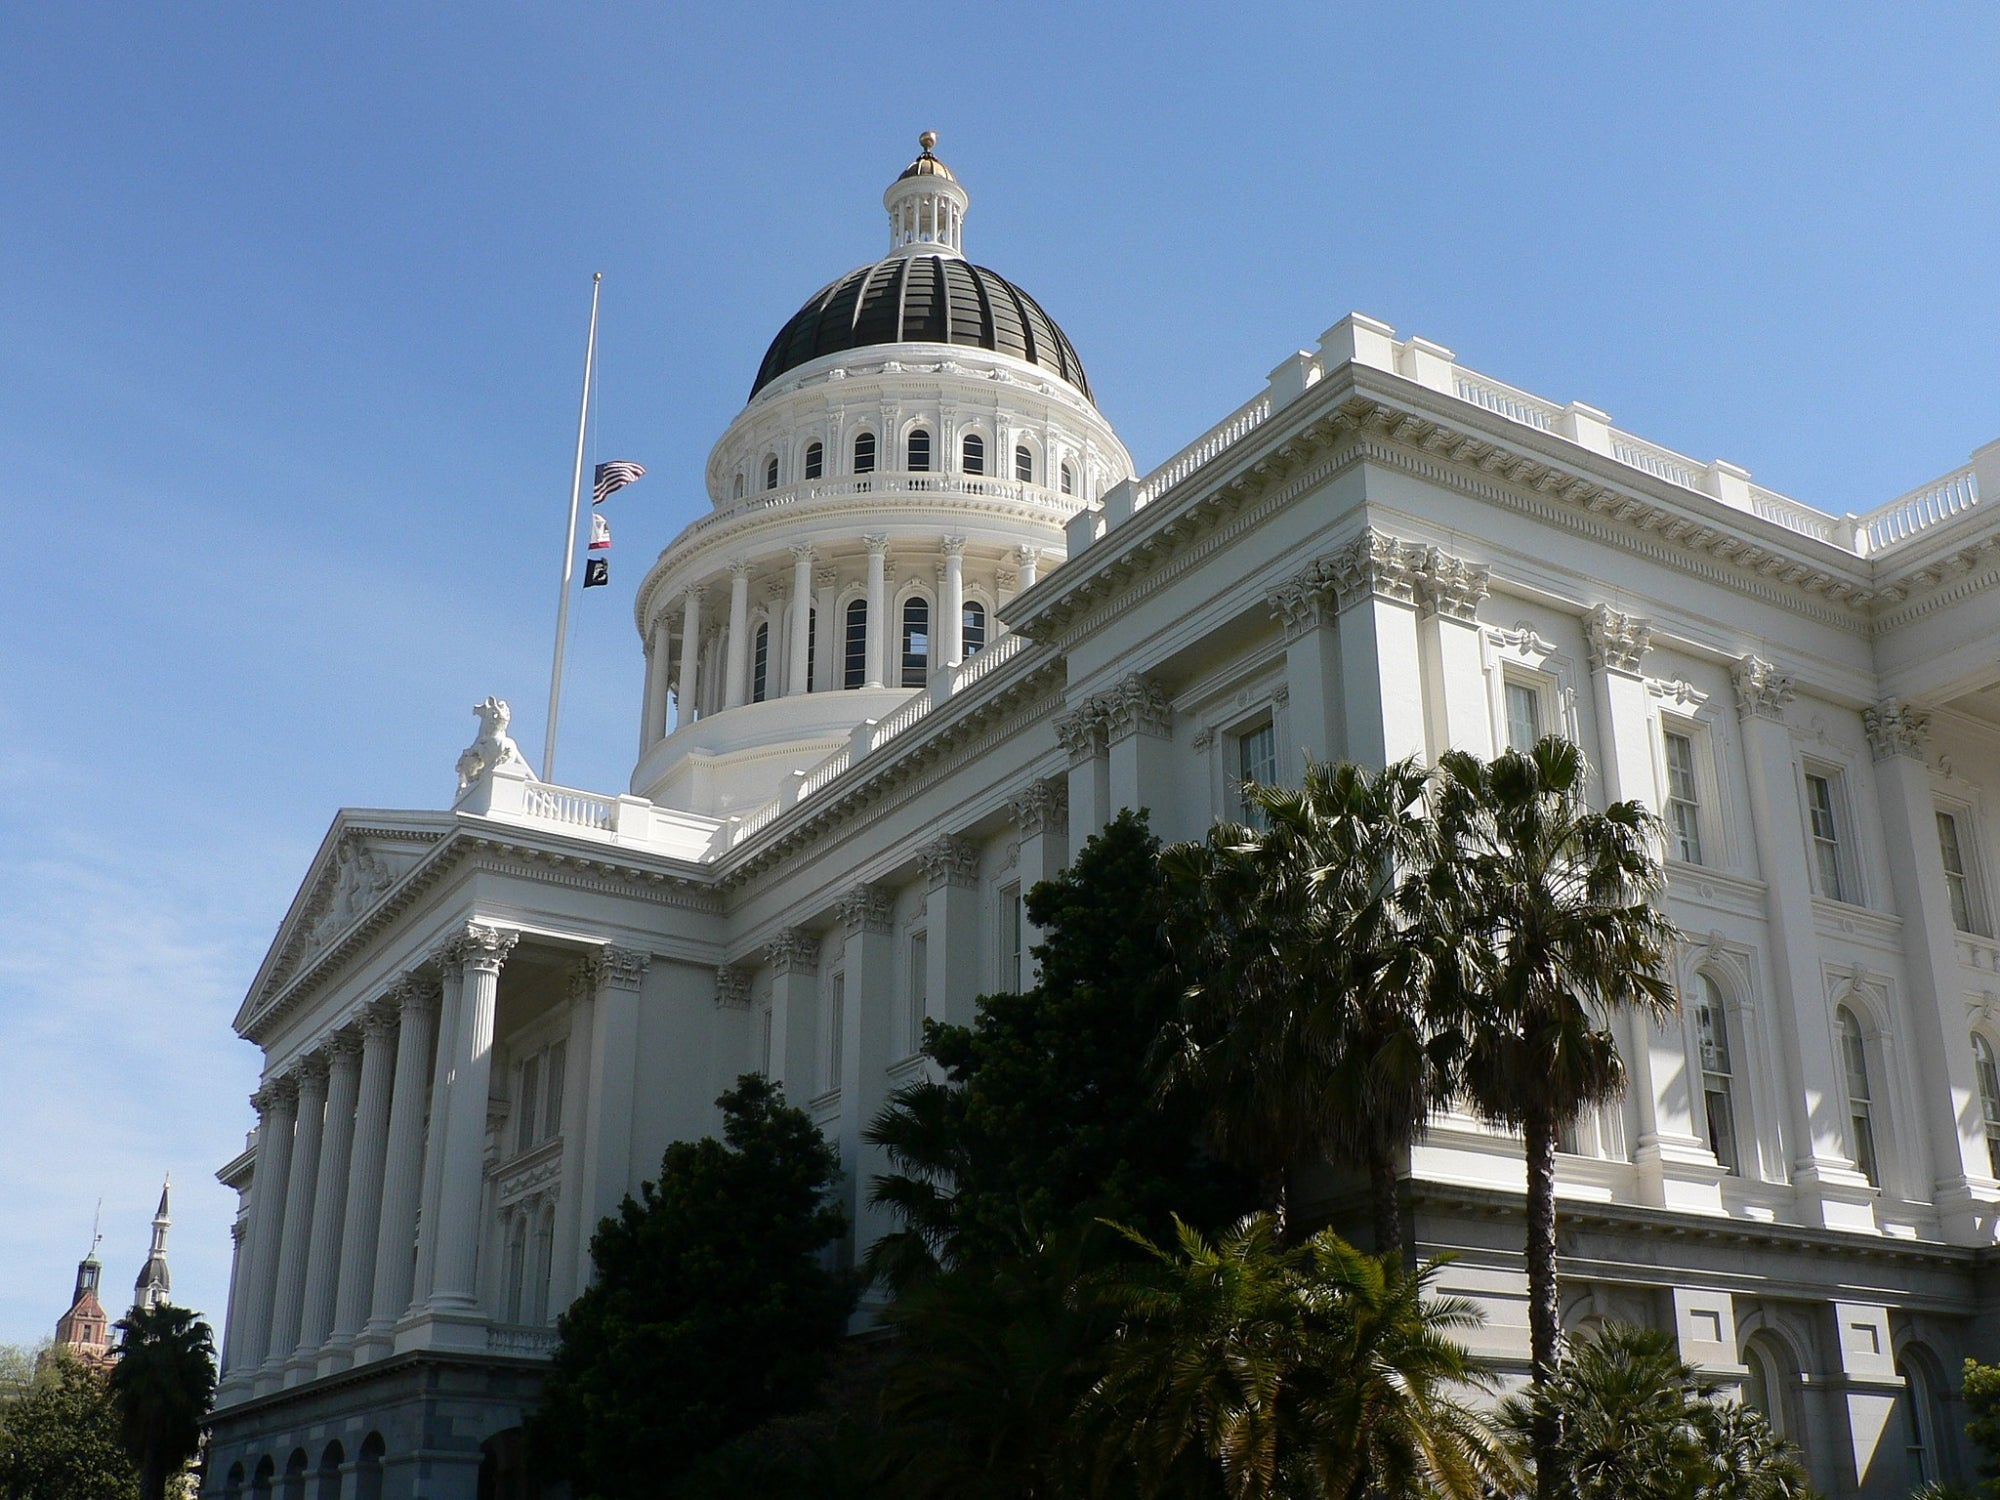 The California State Capitol building with blue skies in the background.